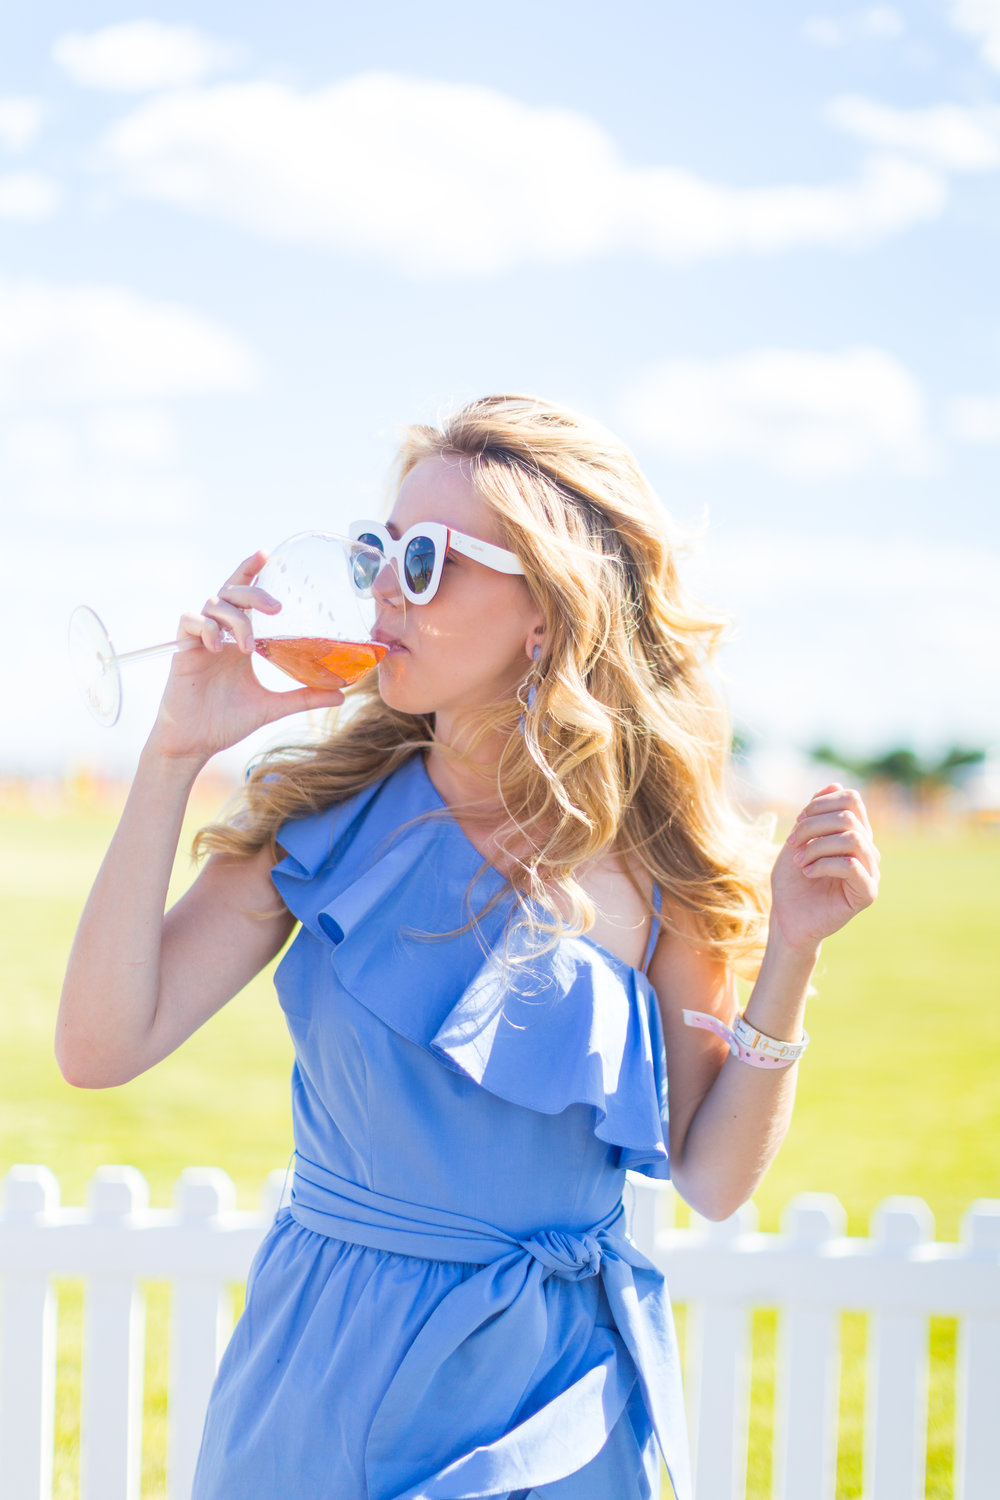 Veuve Clicquot Polo Classic NYC Summer Style Ruffled One Shoulder Blue Dress-12.jpg